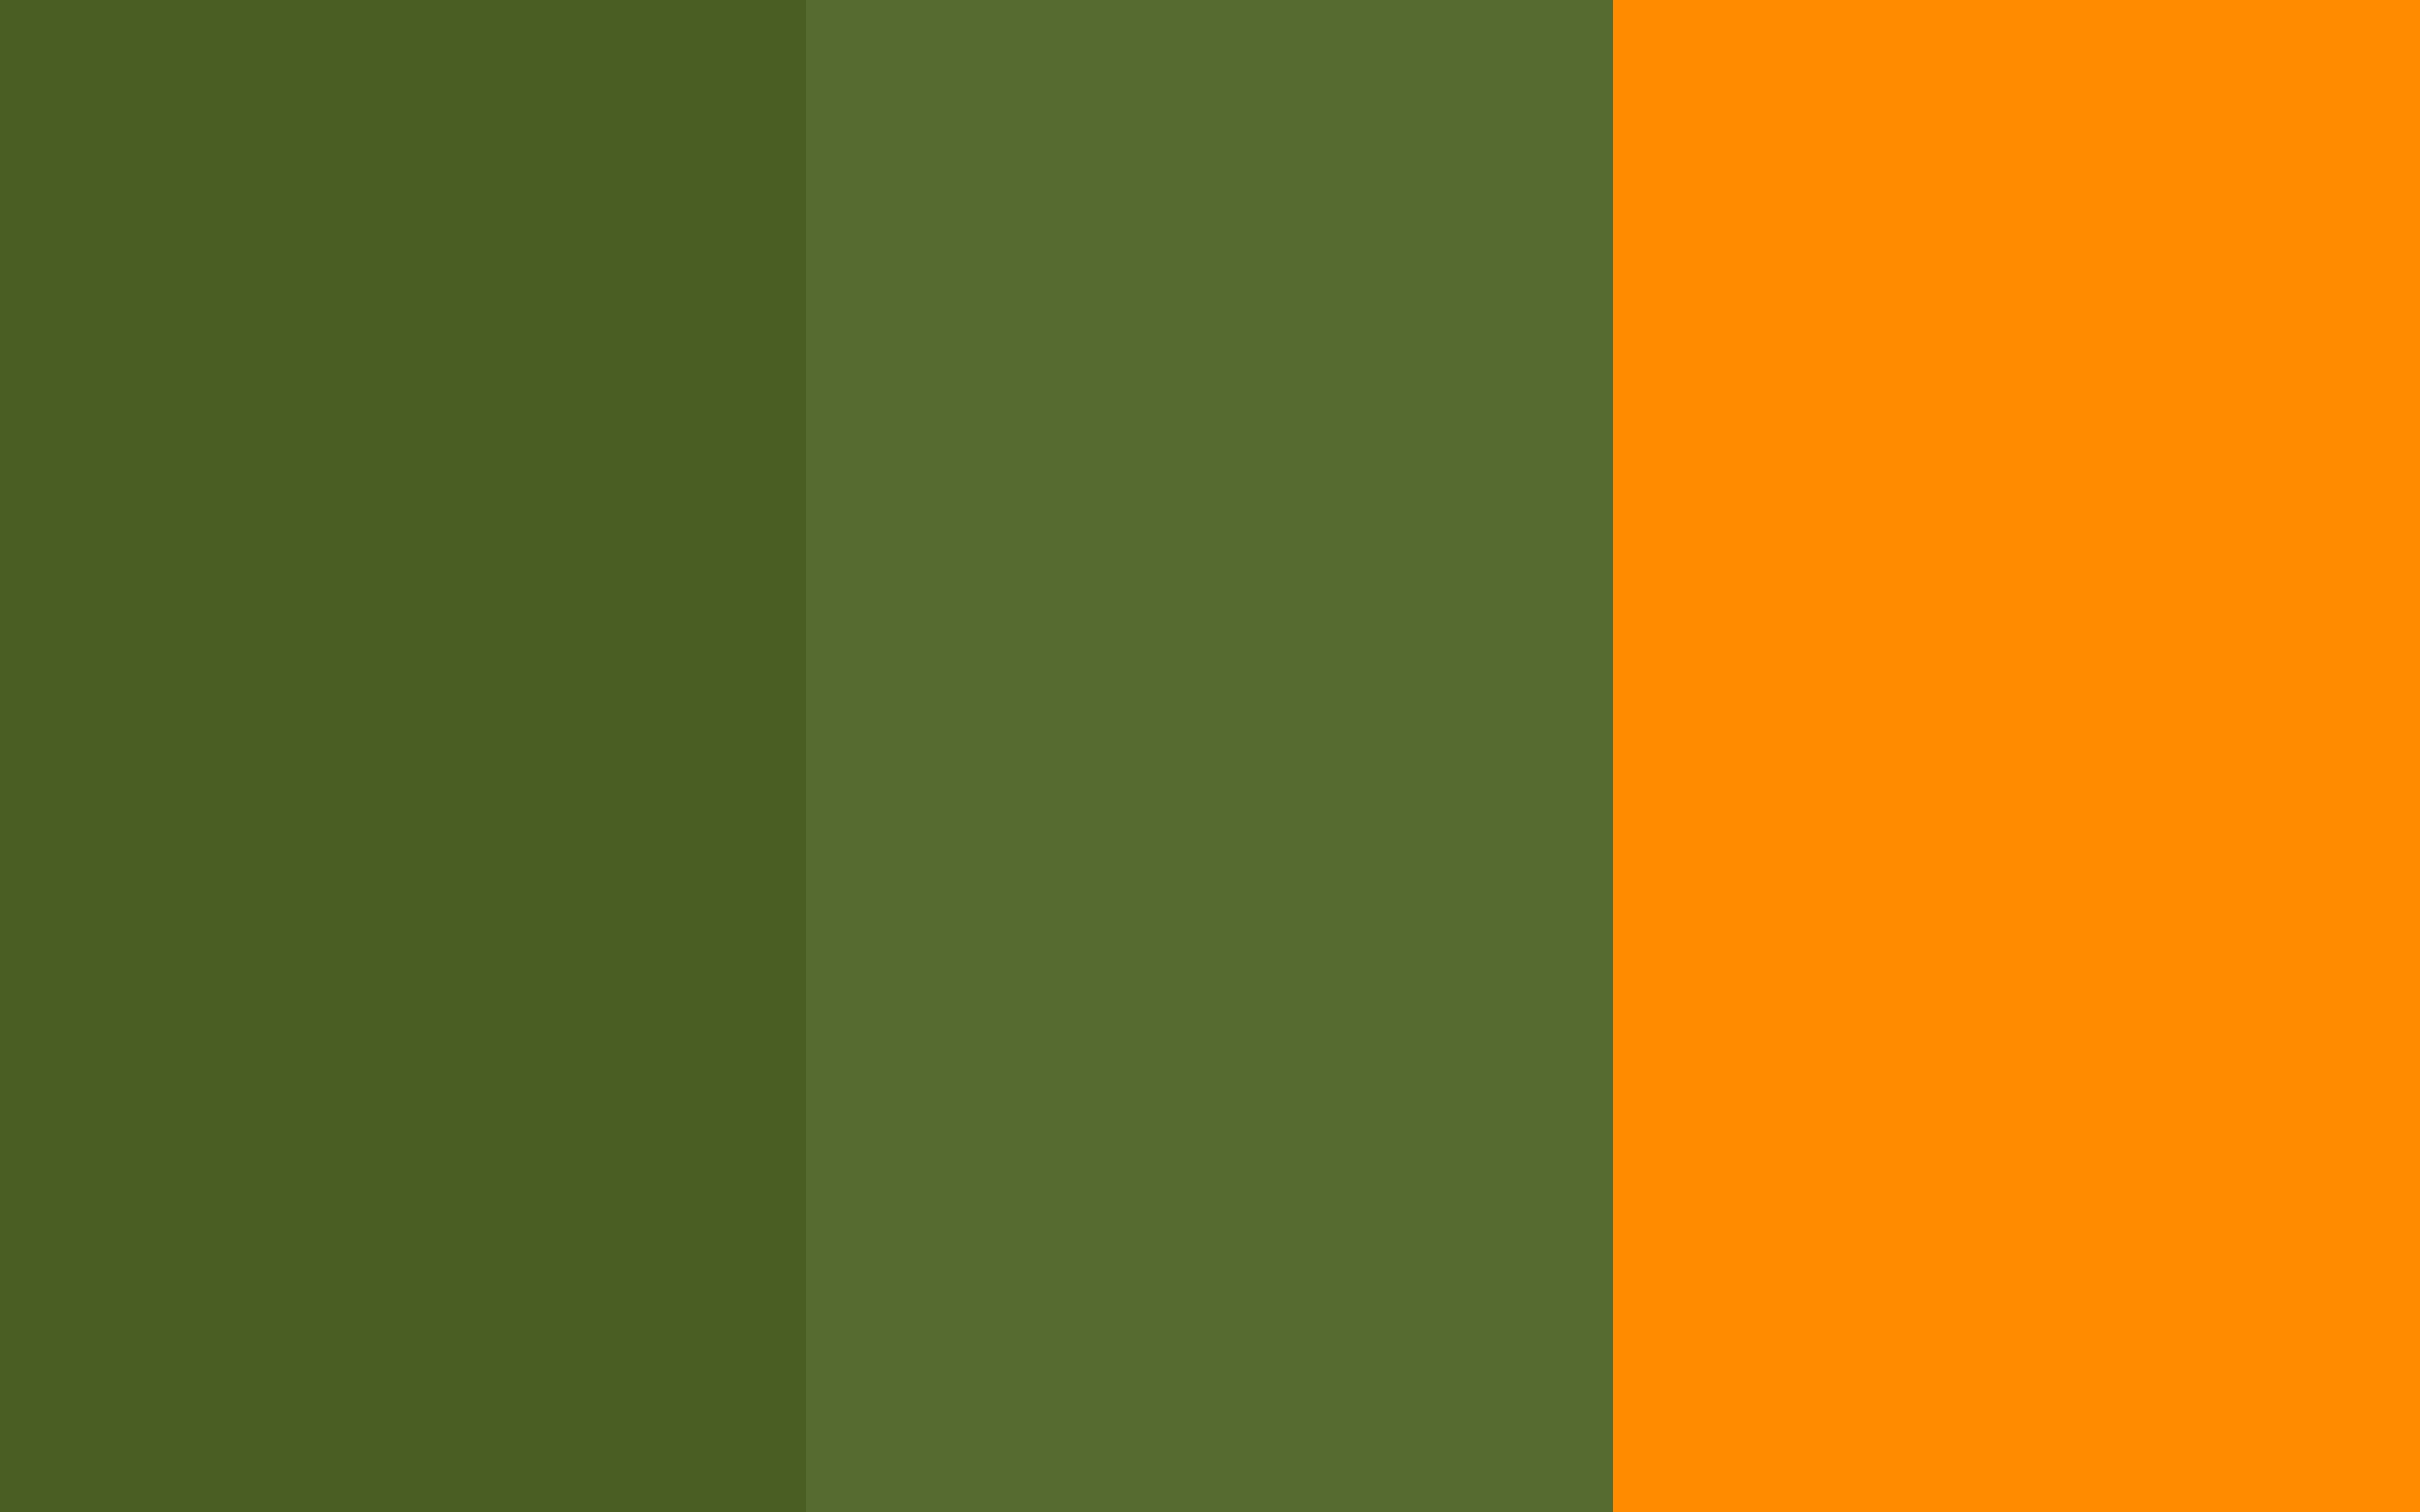 Dark Moss Green Olive Orange Three Color Background 2560x1600